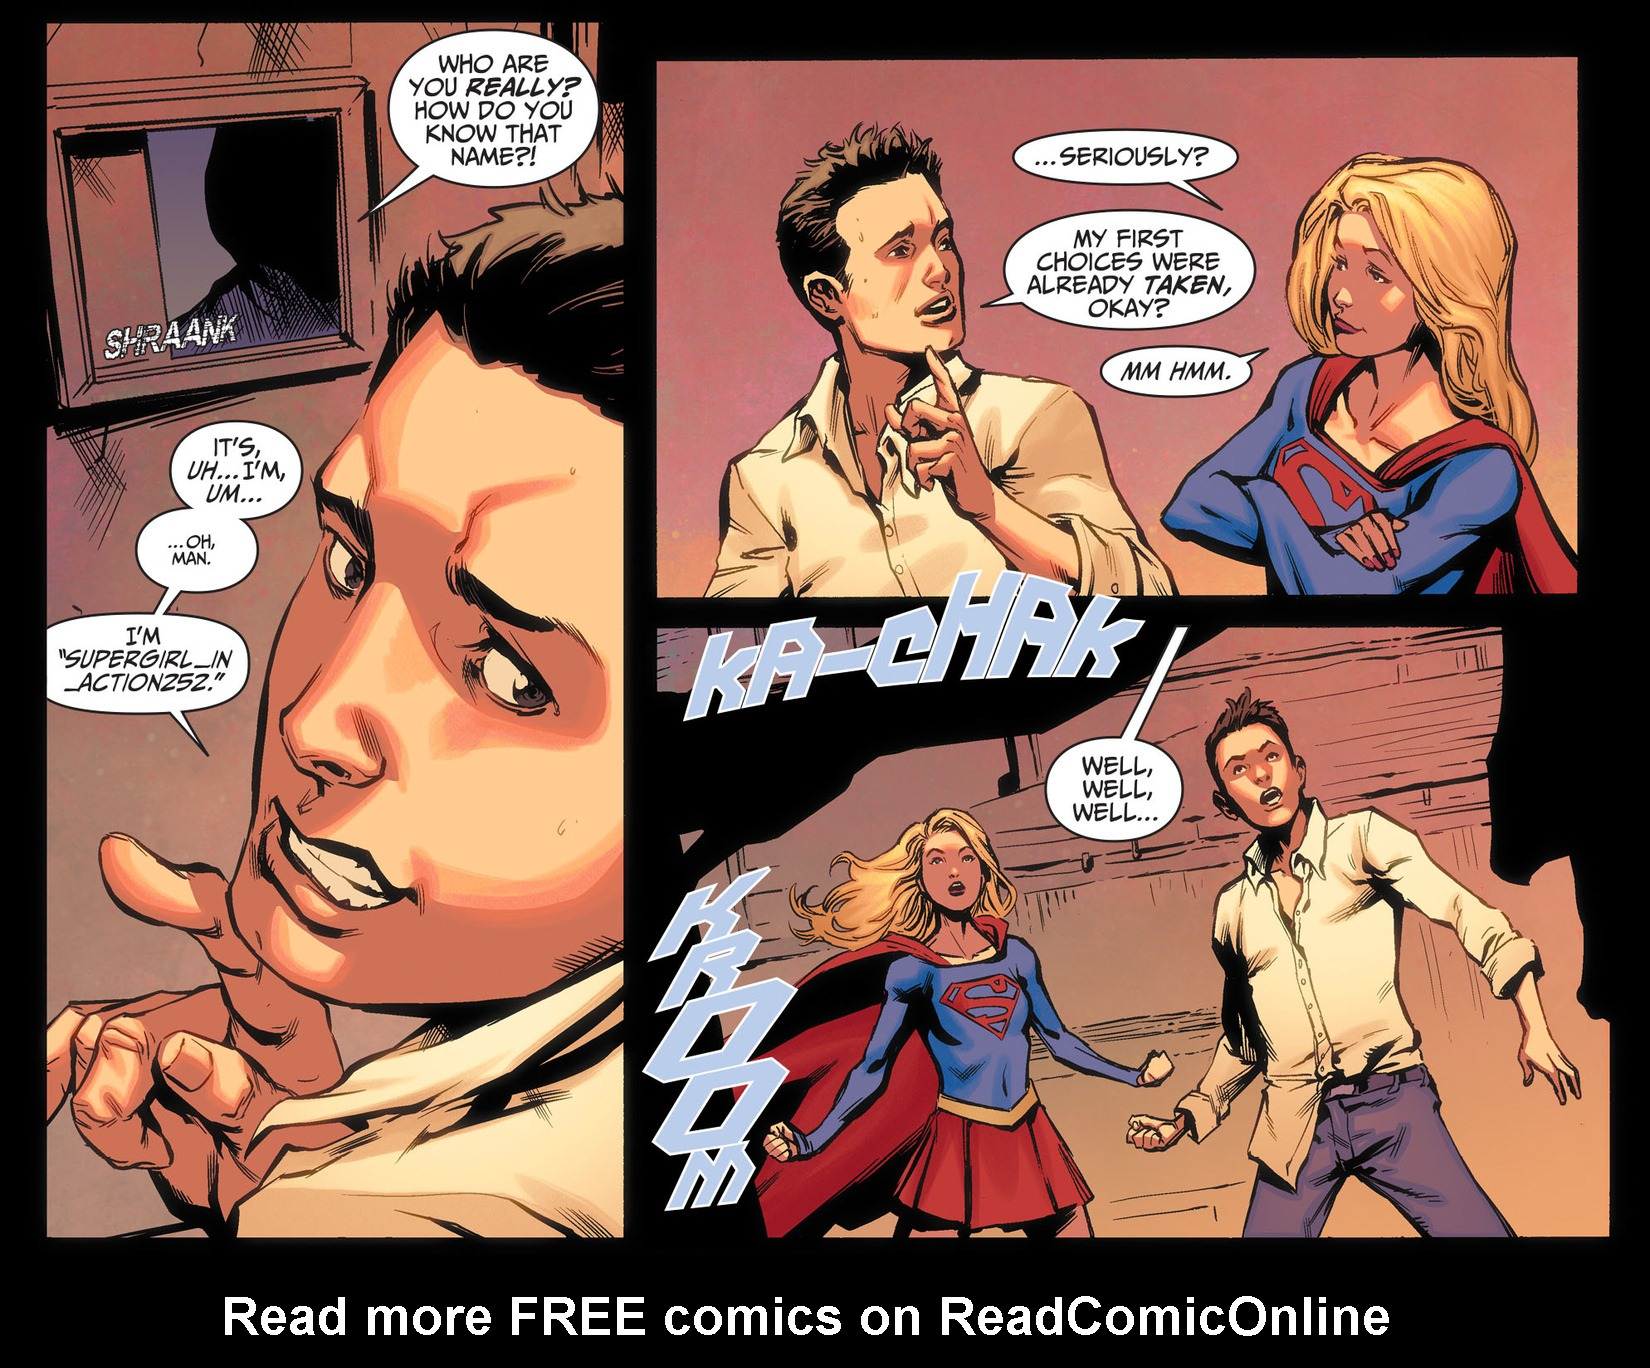 Read online Adventures of Supergirl comic -  Issue #5 - 5